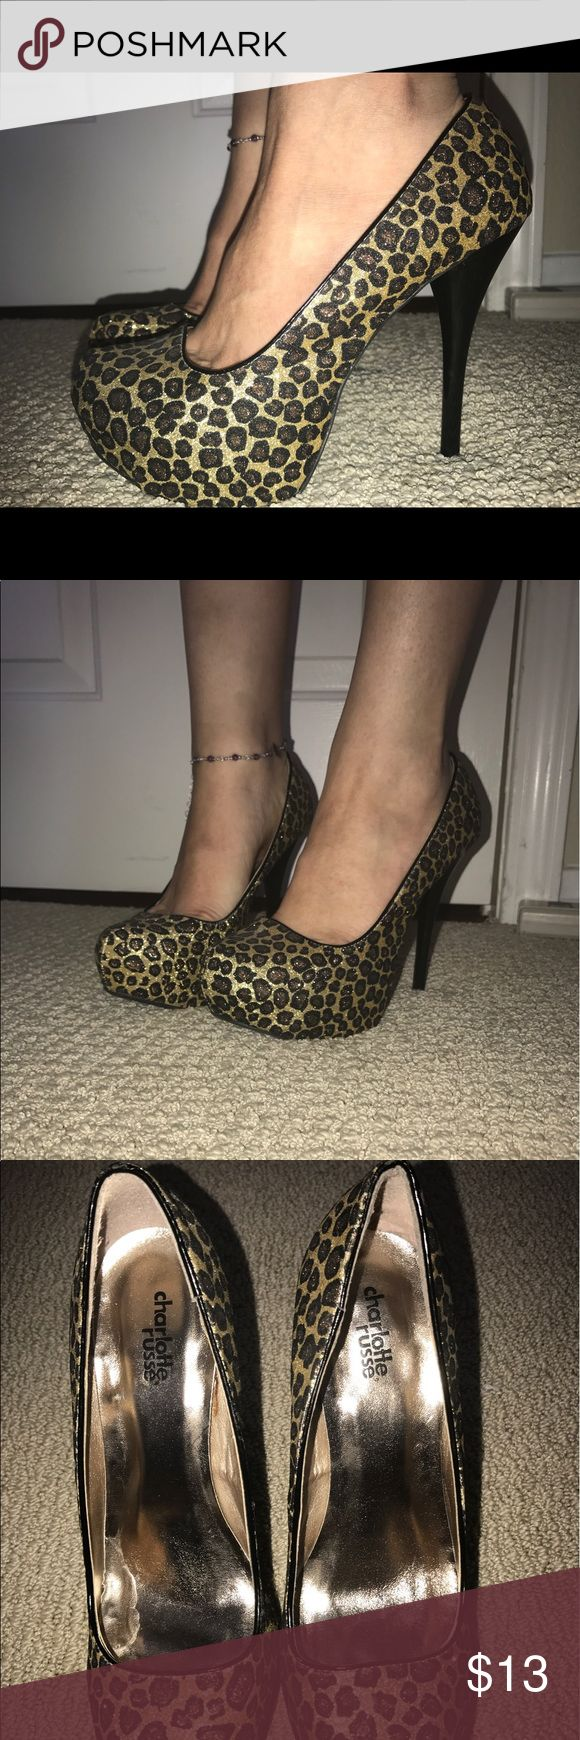 Sparkly Cheetah Heels Sparkly 5 inch cheetah heels! Worn once for homecoming dance way back when. Charlotte Russe Shoes Heels